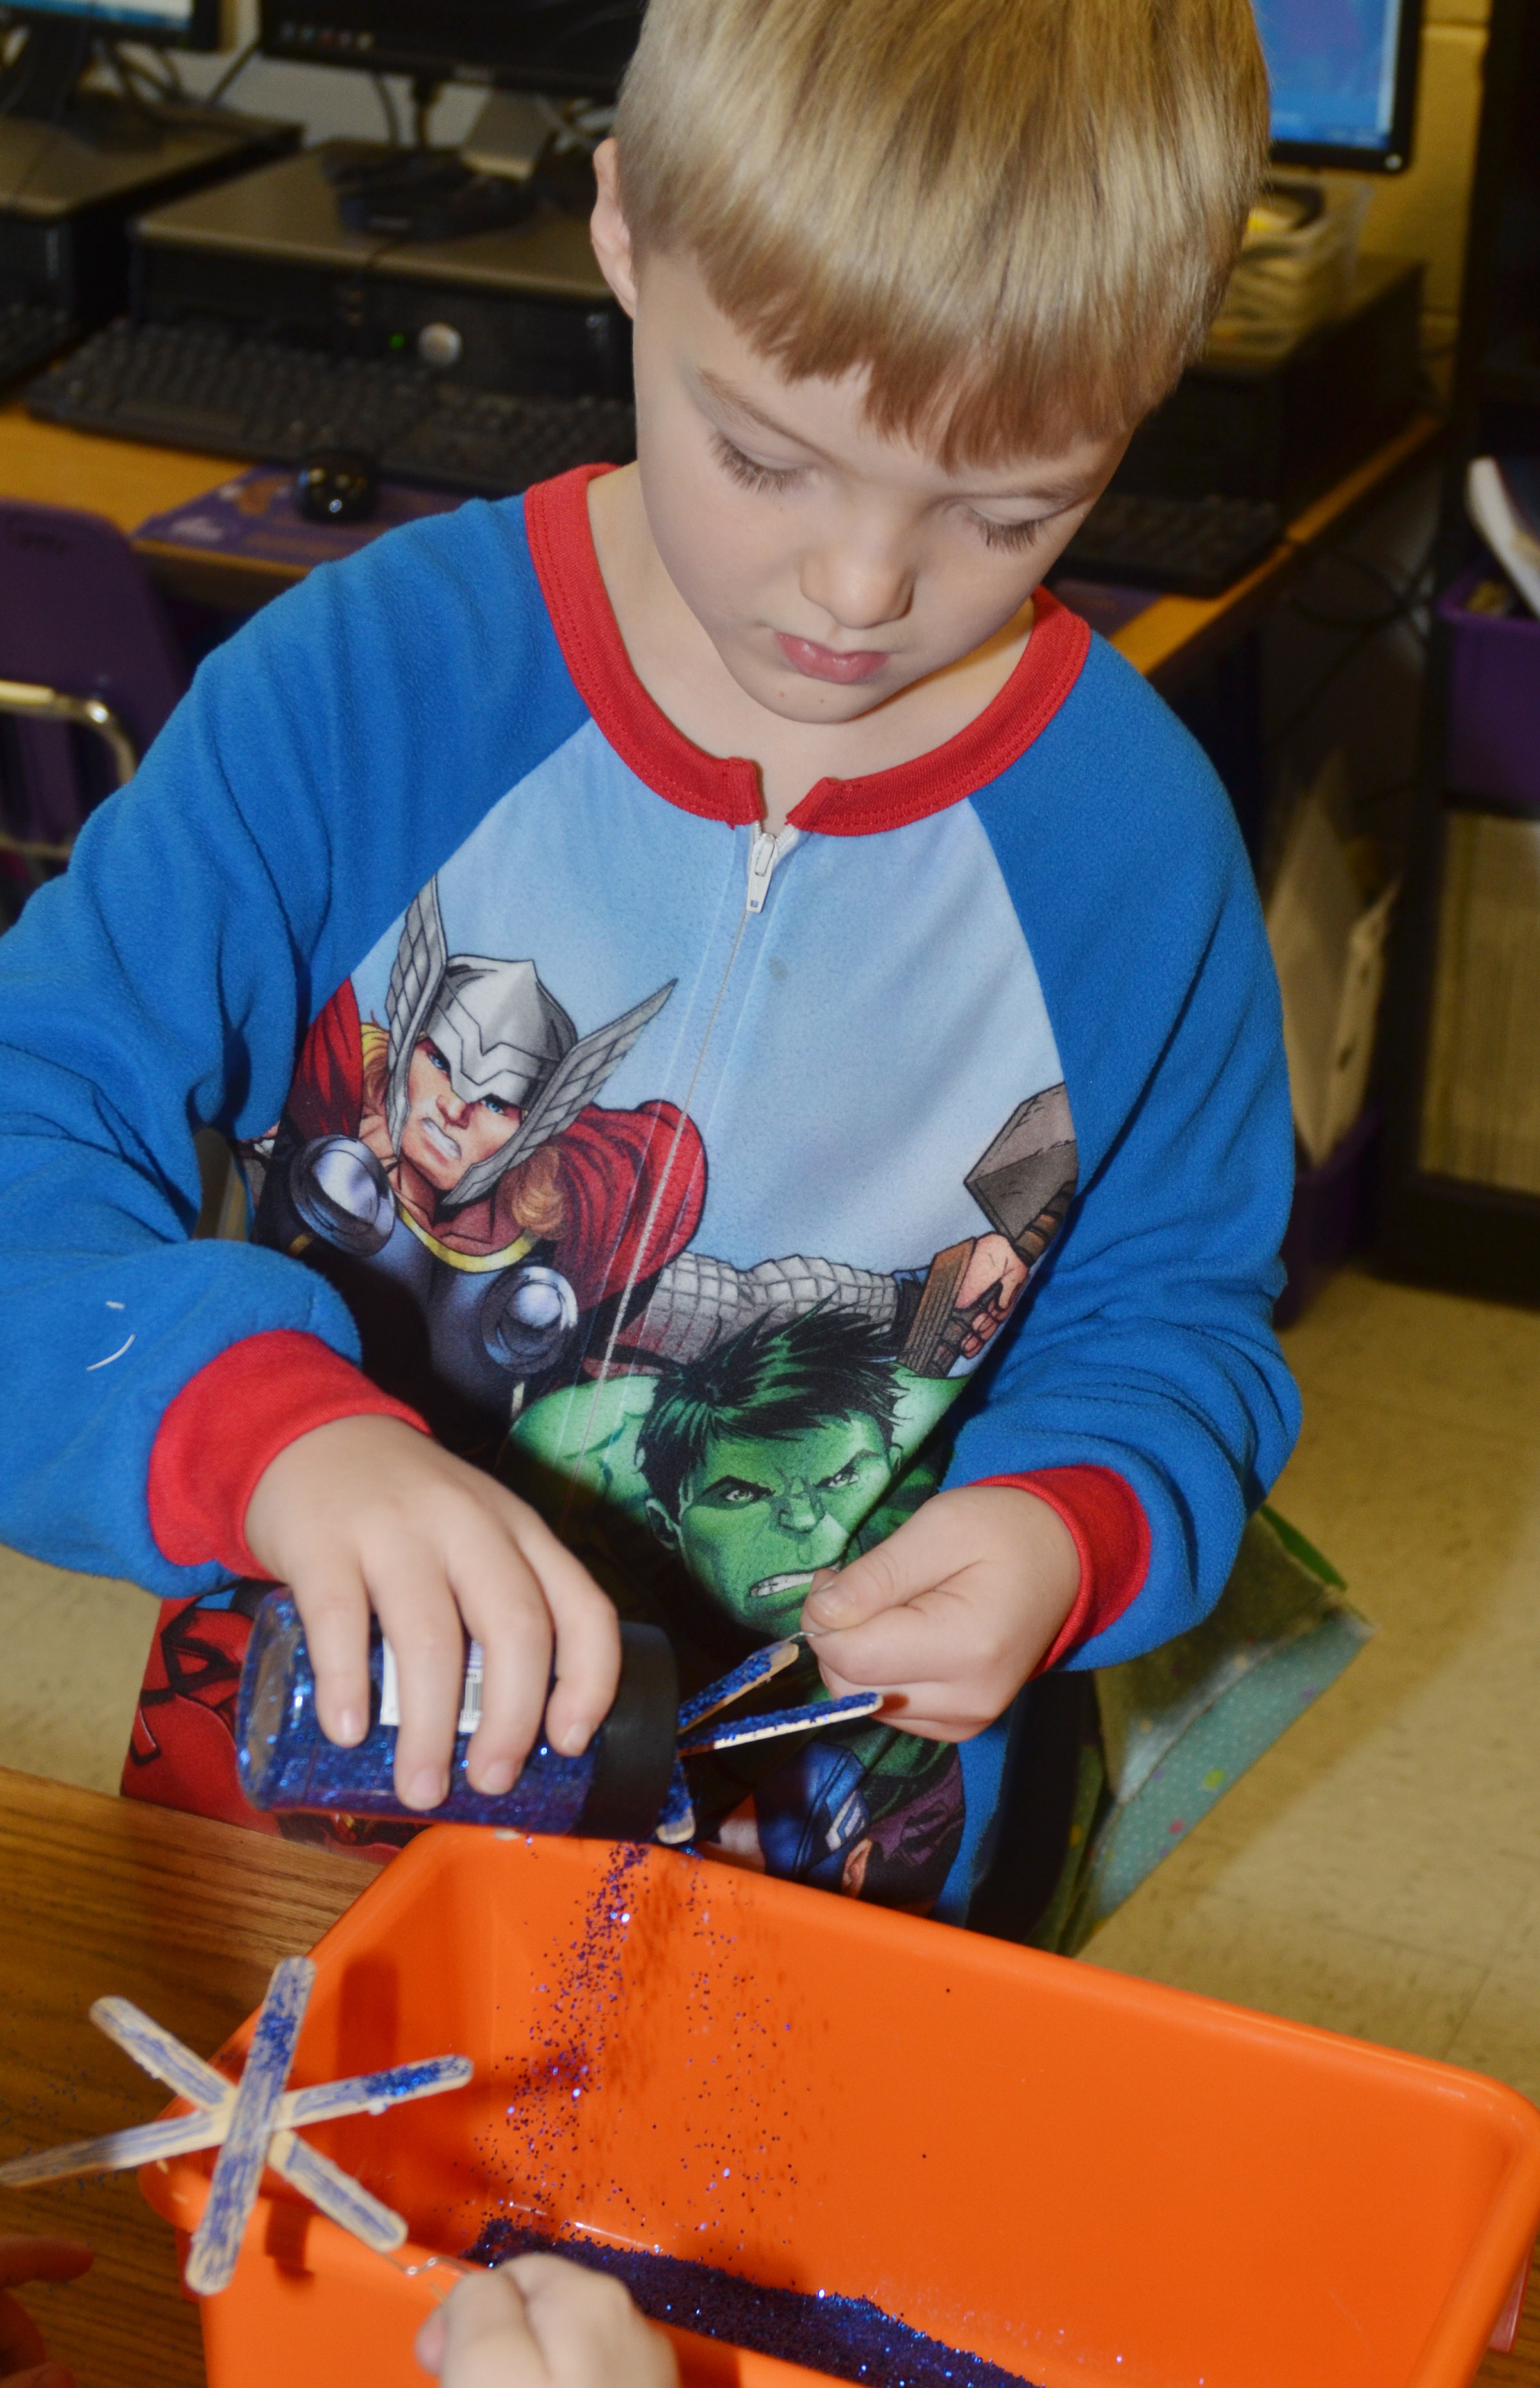 CES first-grader Samuel Scharbrough adds glitter to his snowflake ornament.